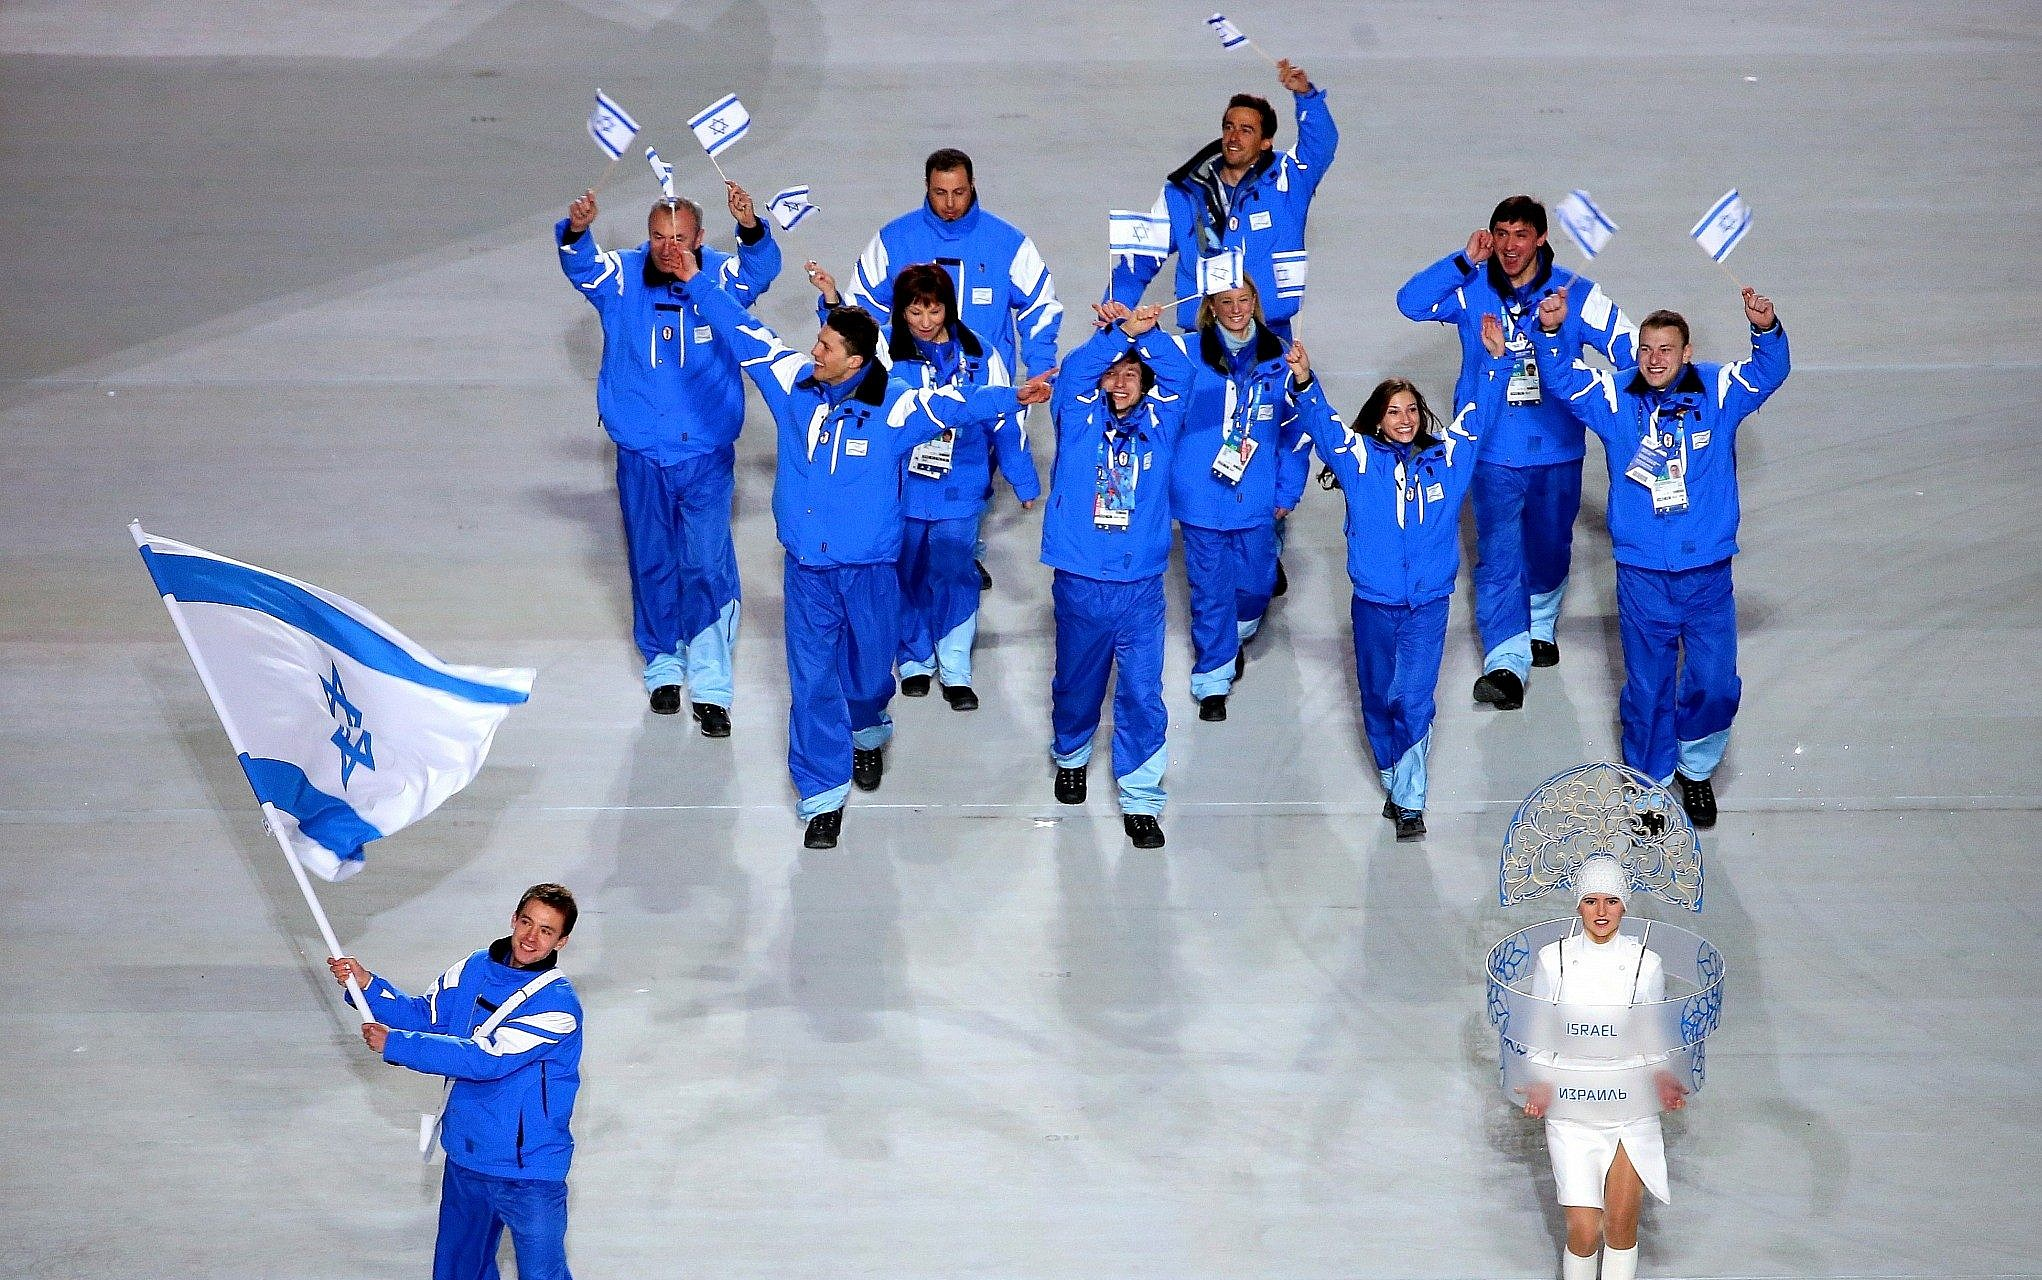 Olympic Committee to hold trainings in Sochi 02/17/2011 26